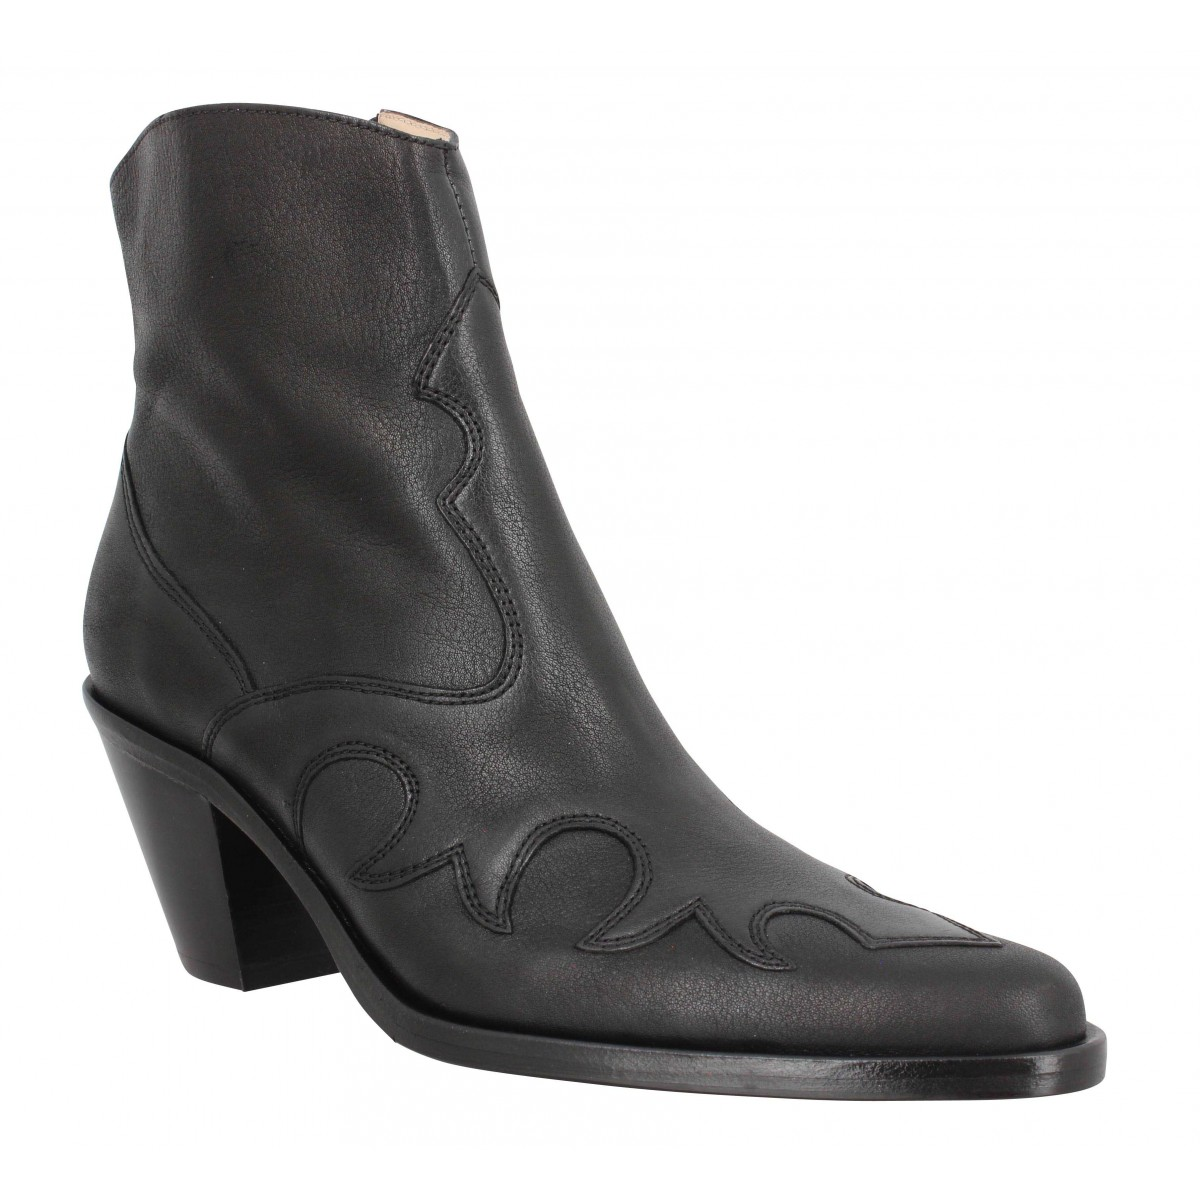 Bottines FREE LANCE Jane 7 West Zip Boot cuir graine Femme Noir